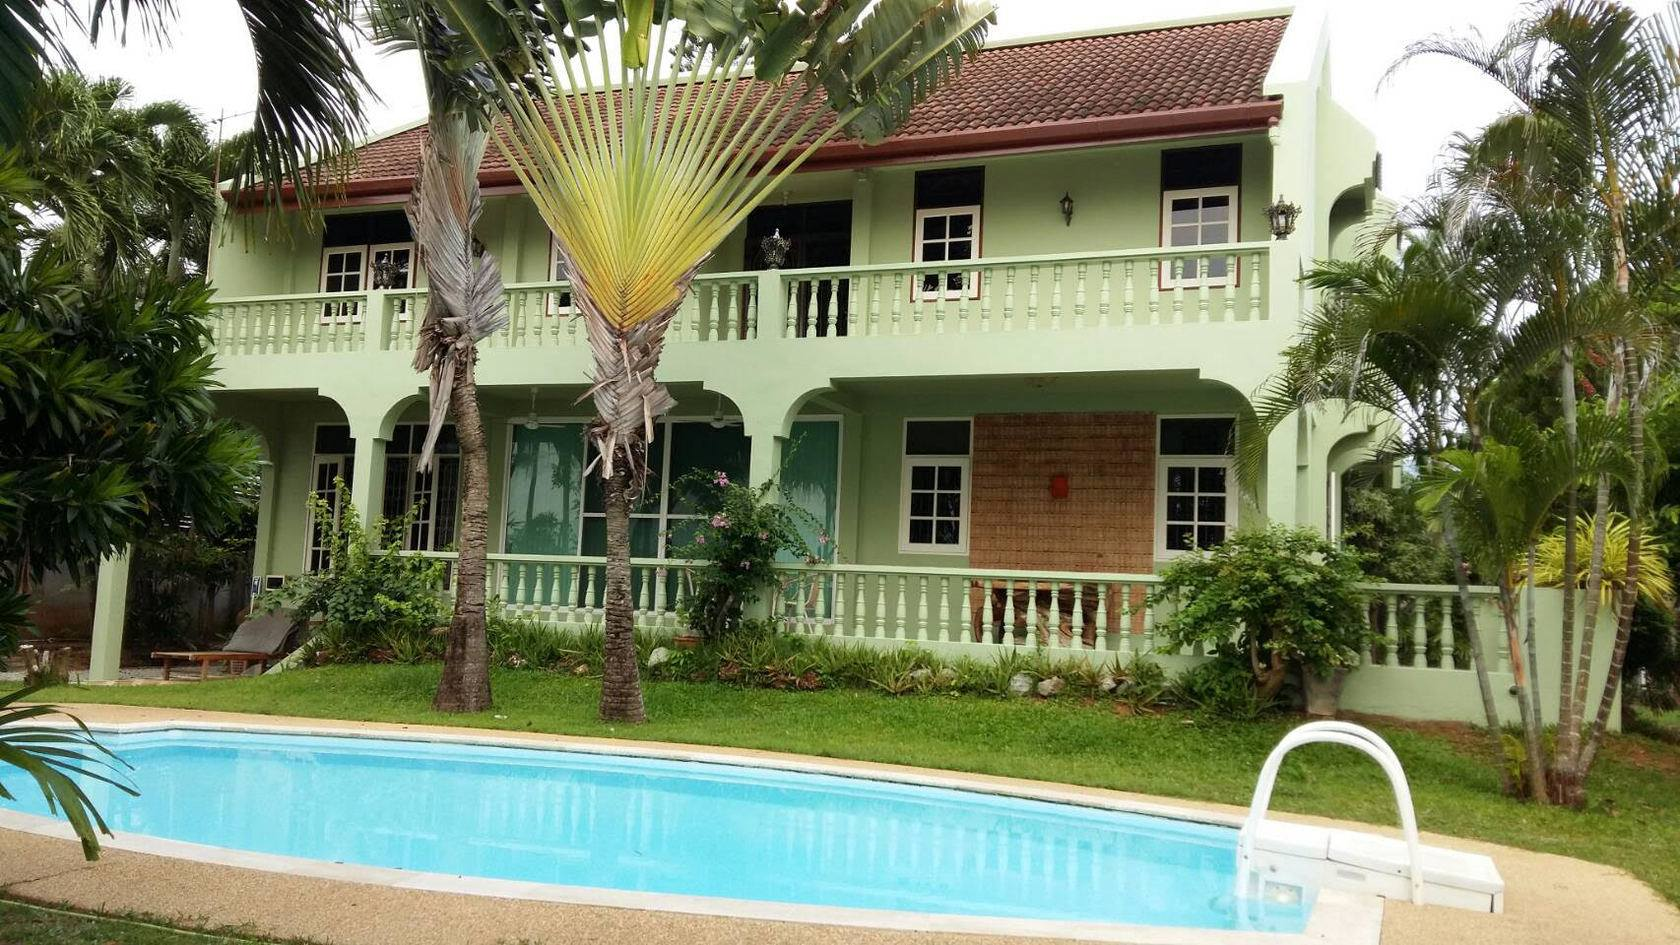 Phuket house for rent/Sale, 3b/3b, Beach Front